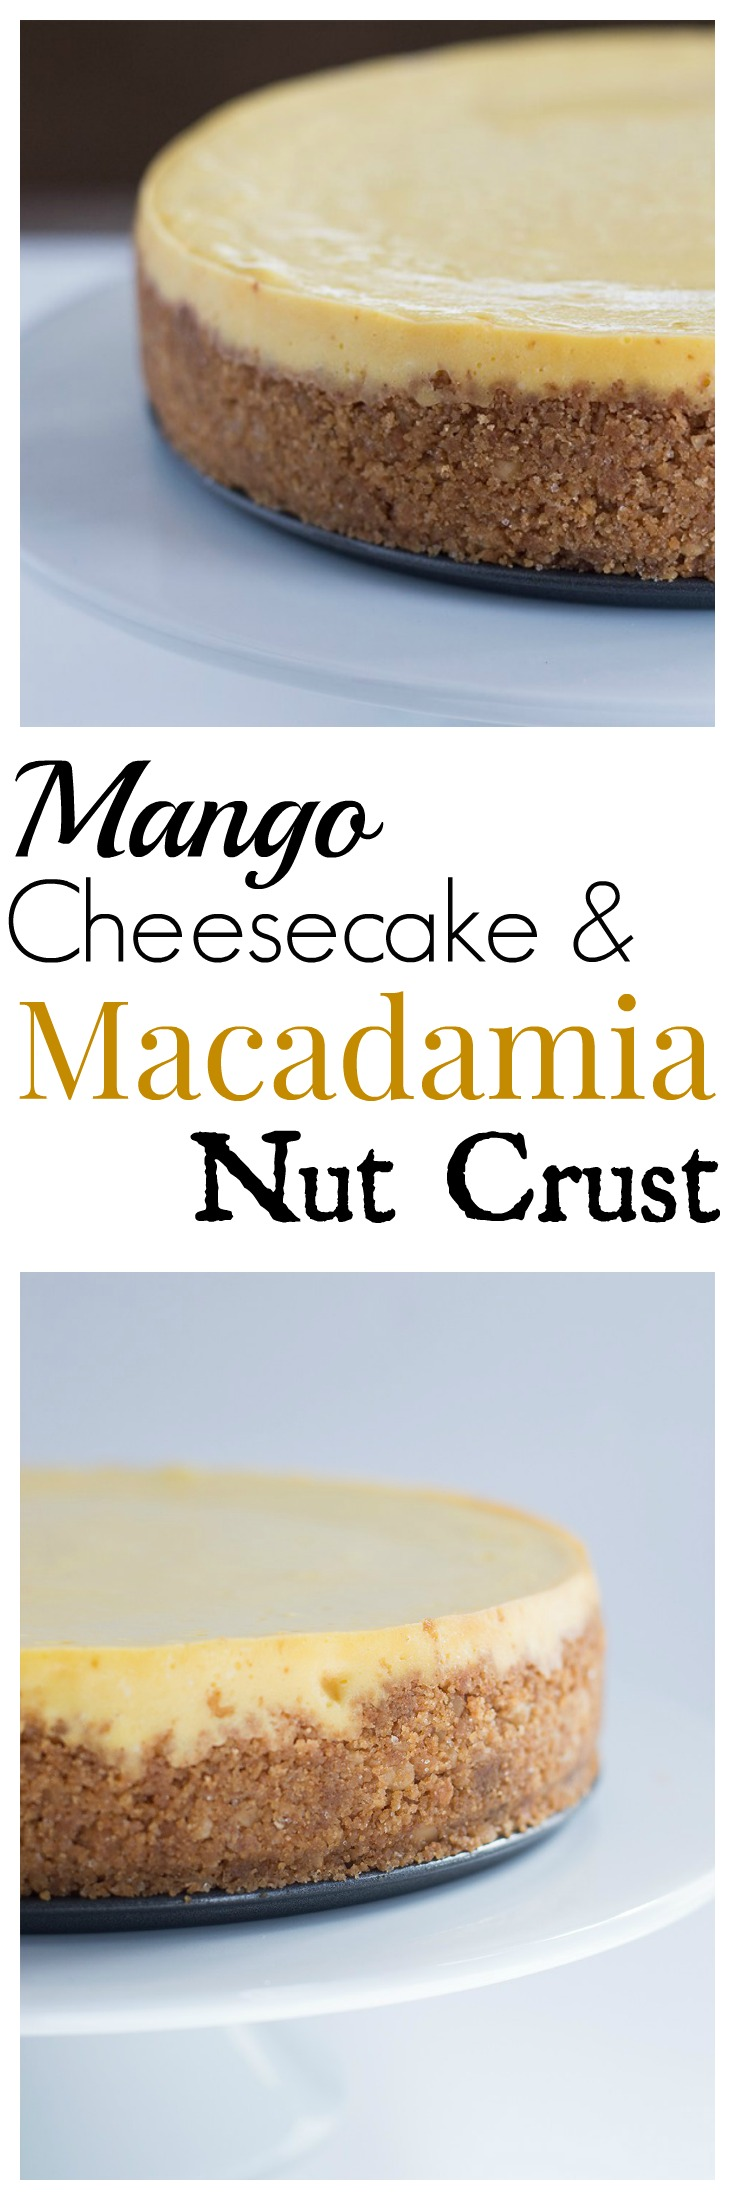 Mango Cheesecake with Macadamia Nut Crust - Savory Spicerack